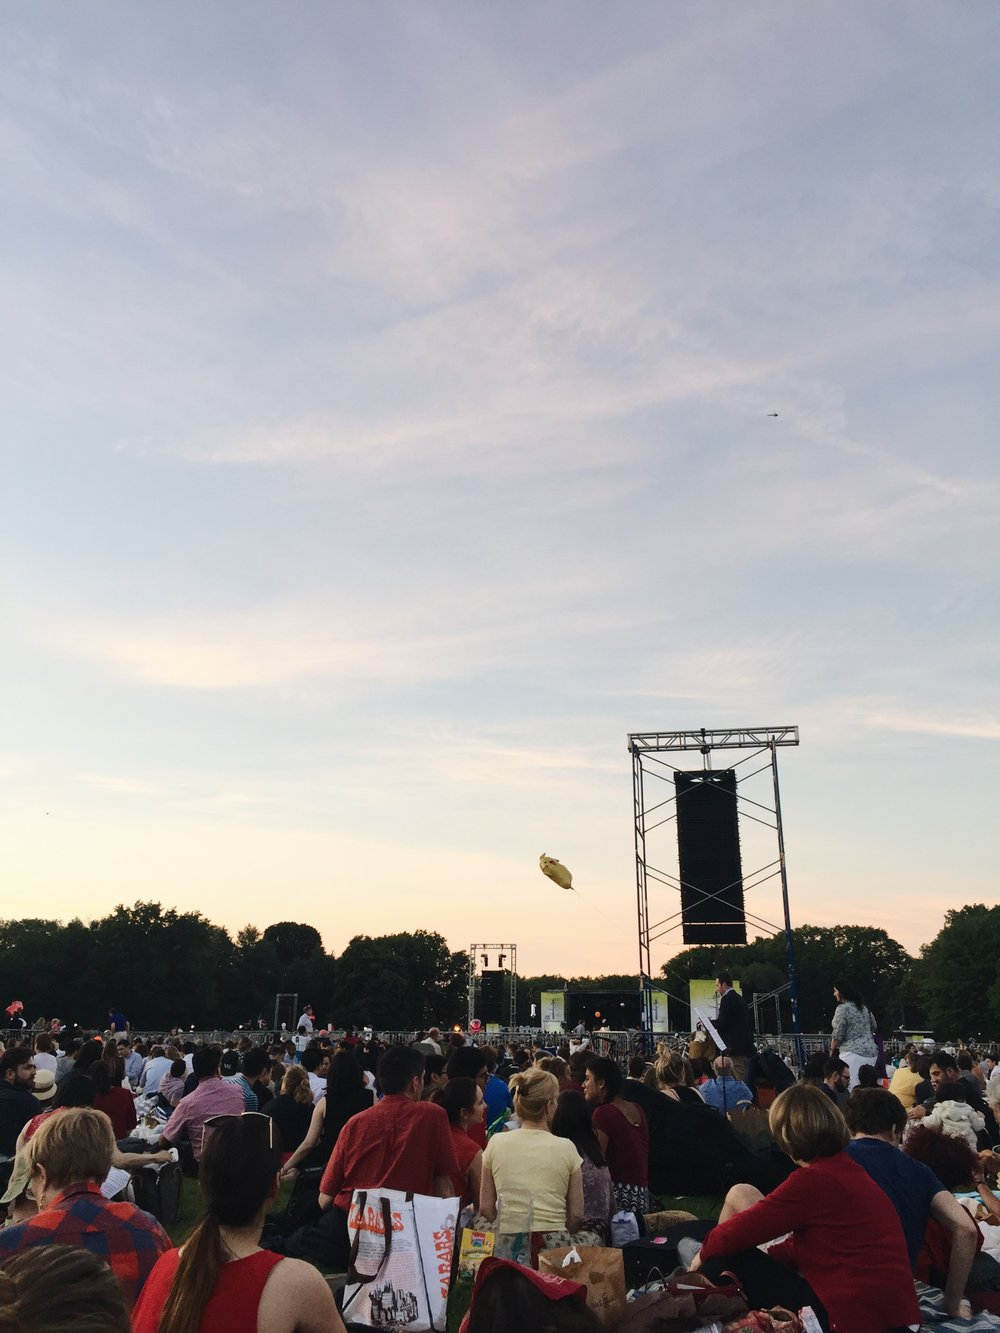 A free New York Philharmonic Orchestra concert in Central Park